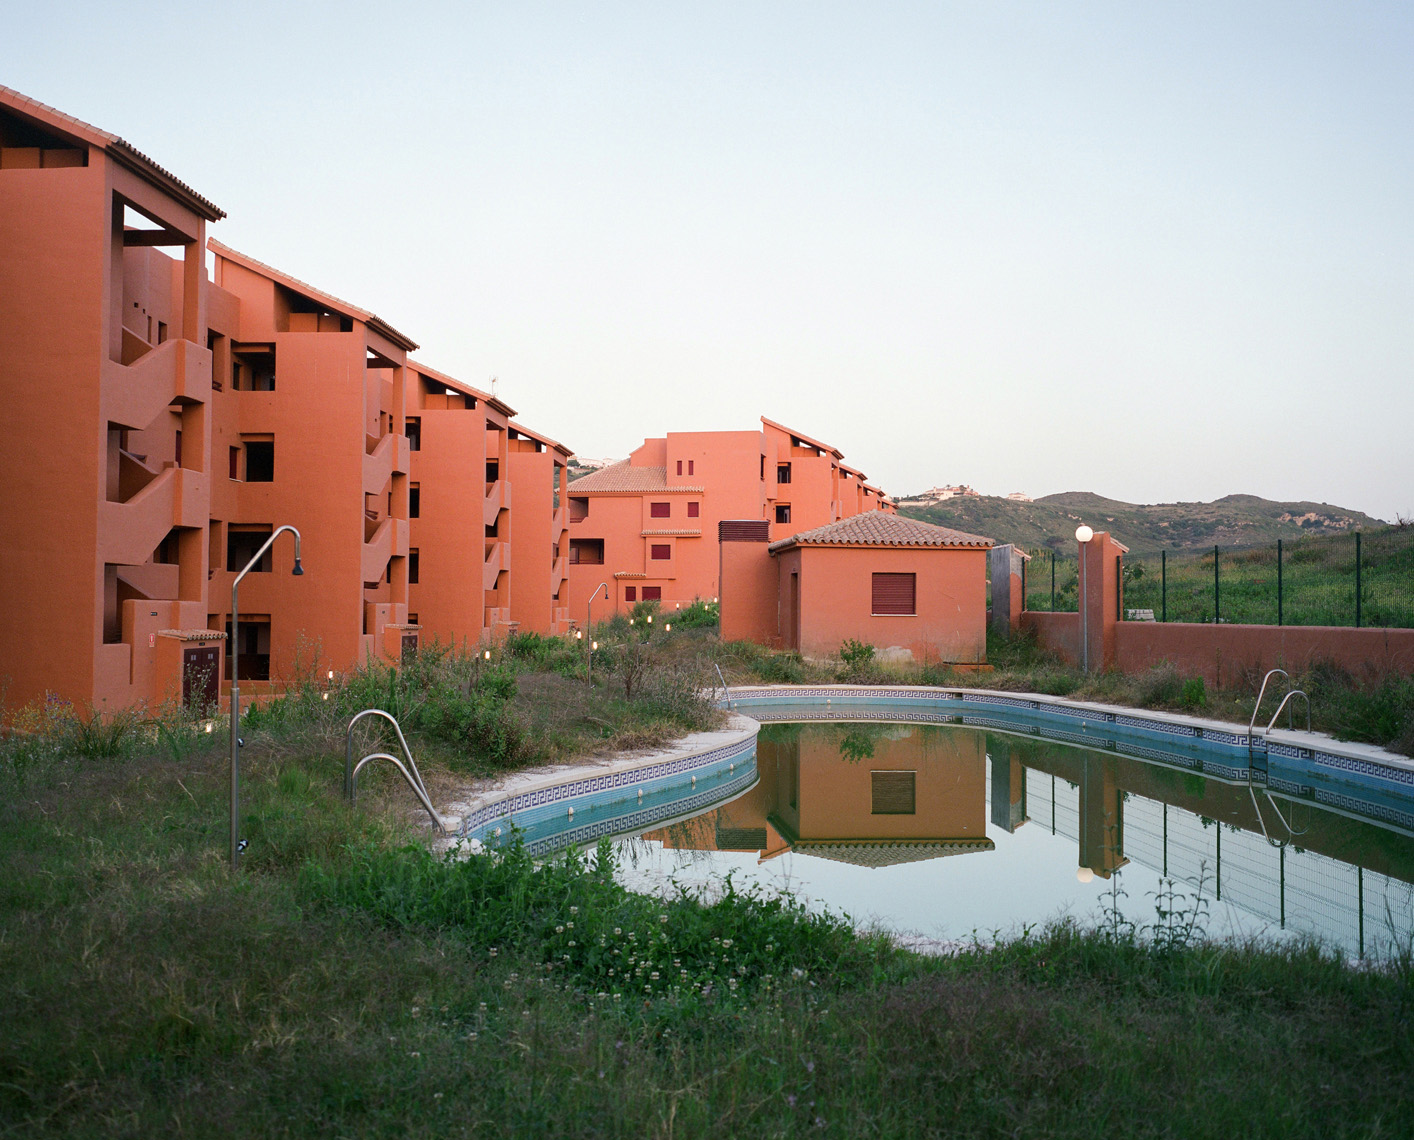 La Duquesa Housing Development